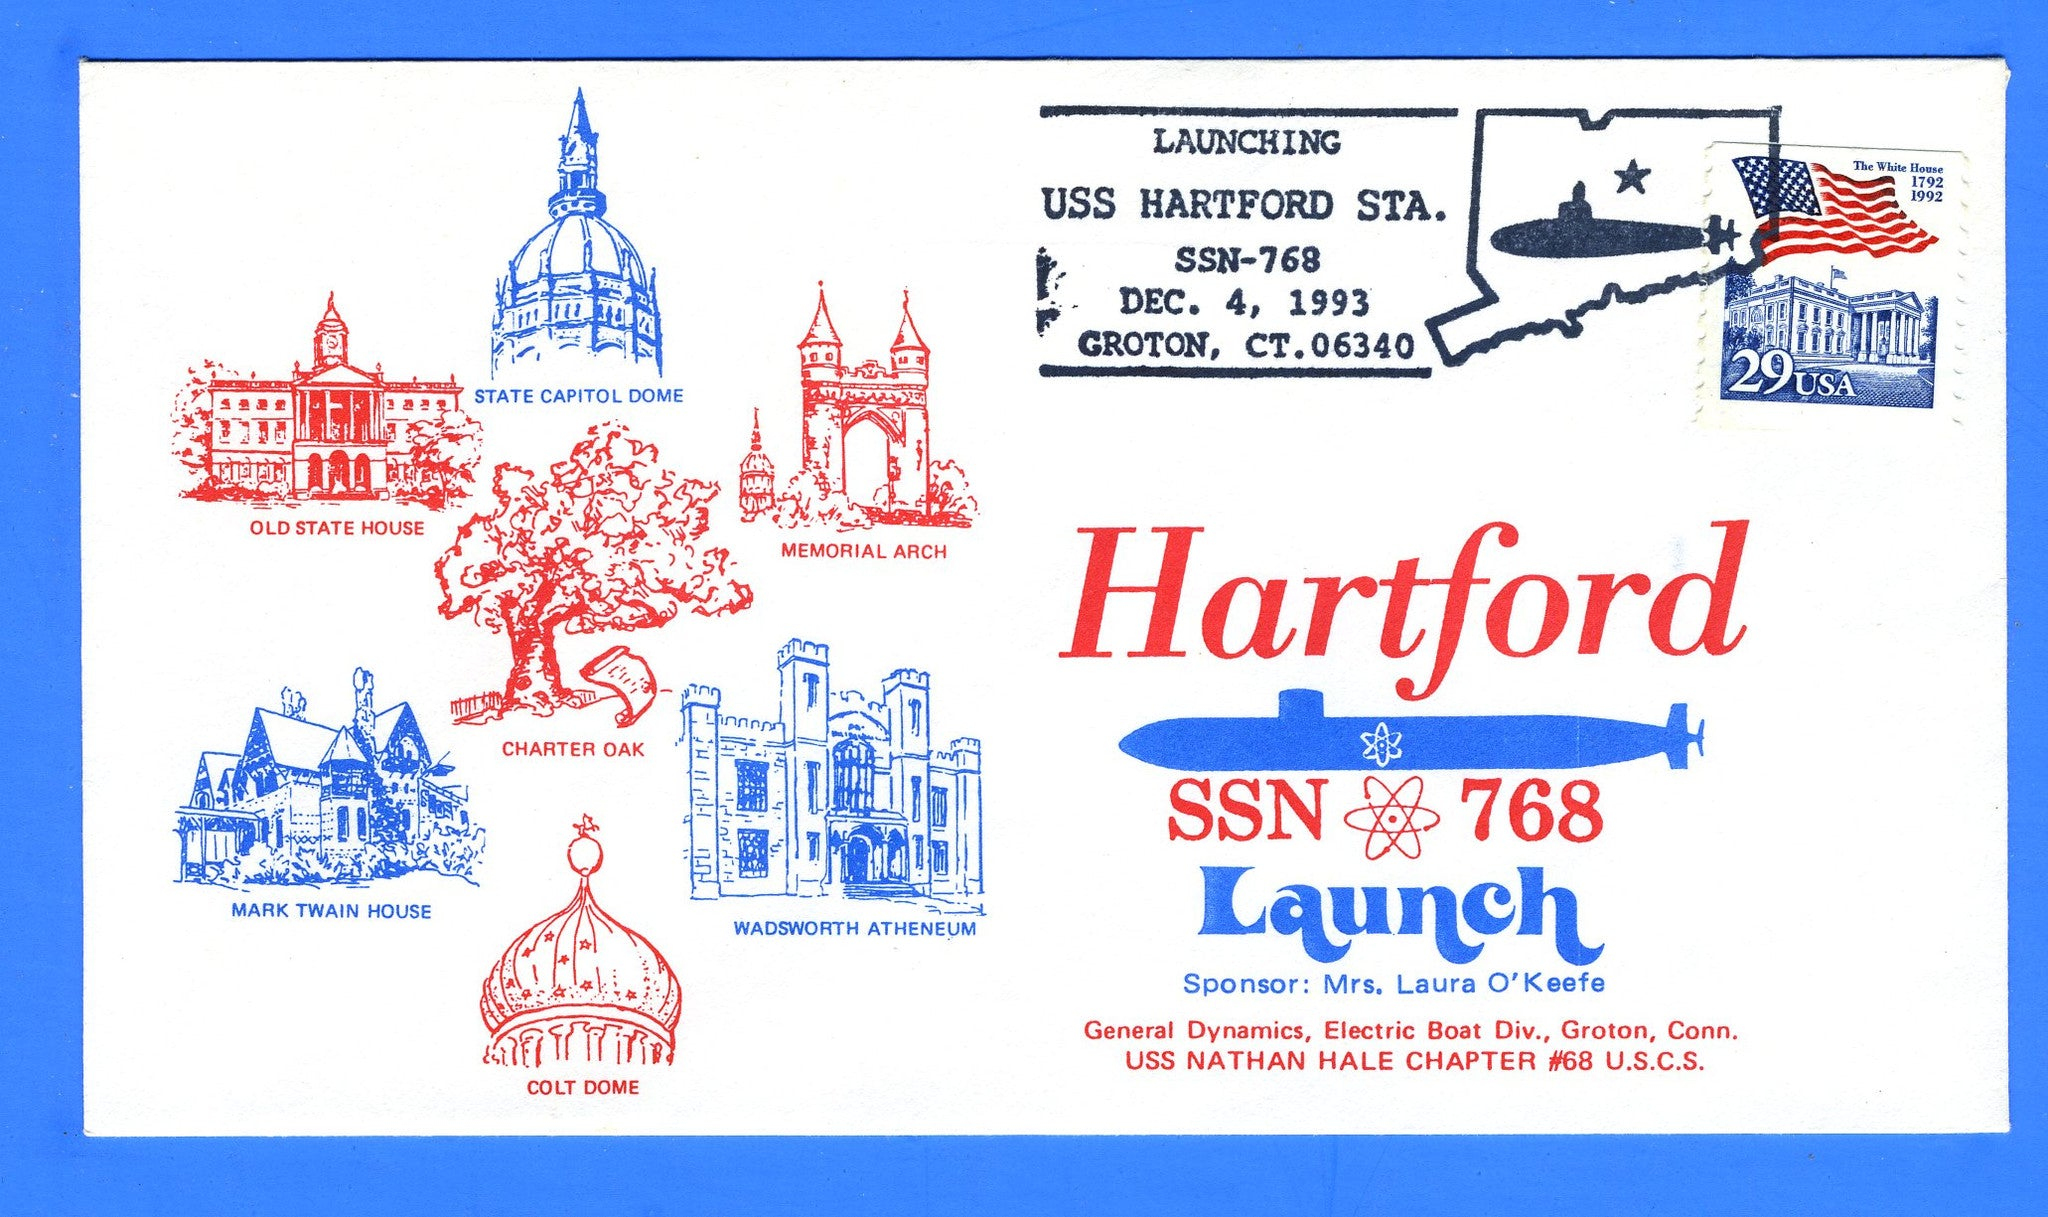 USS Hartford SSN-768 Launched December 4, 1993